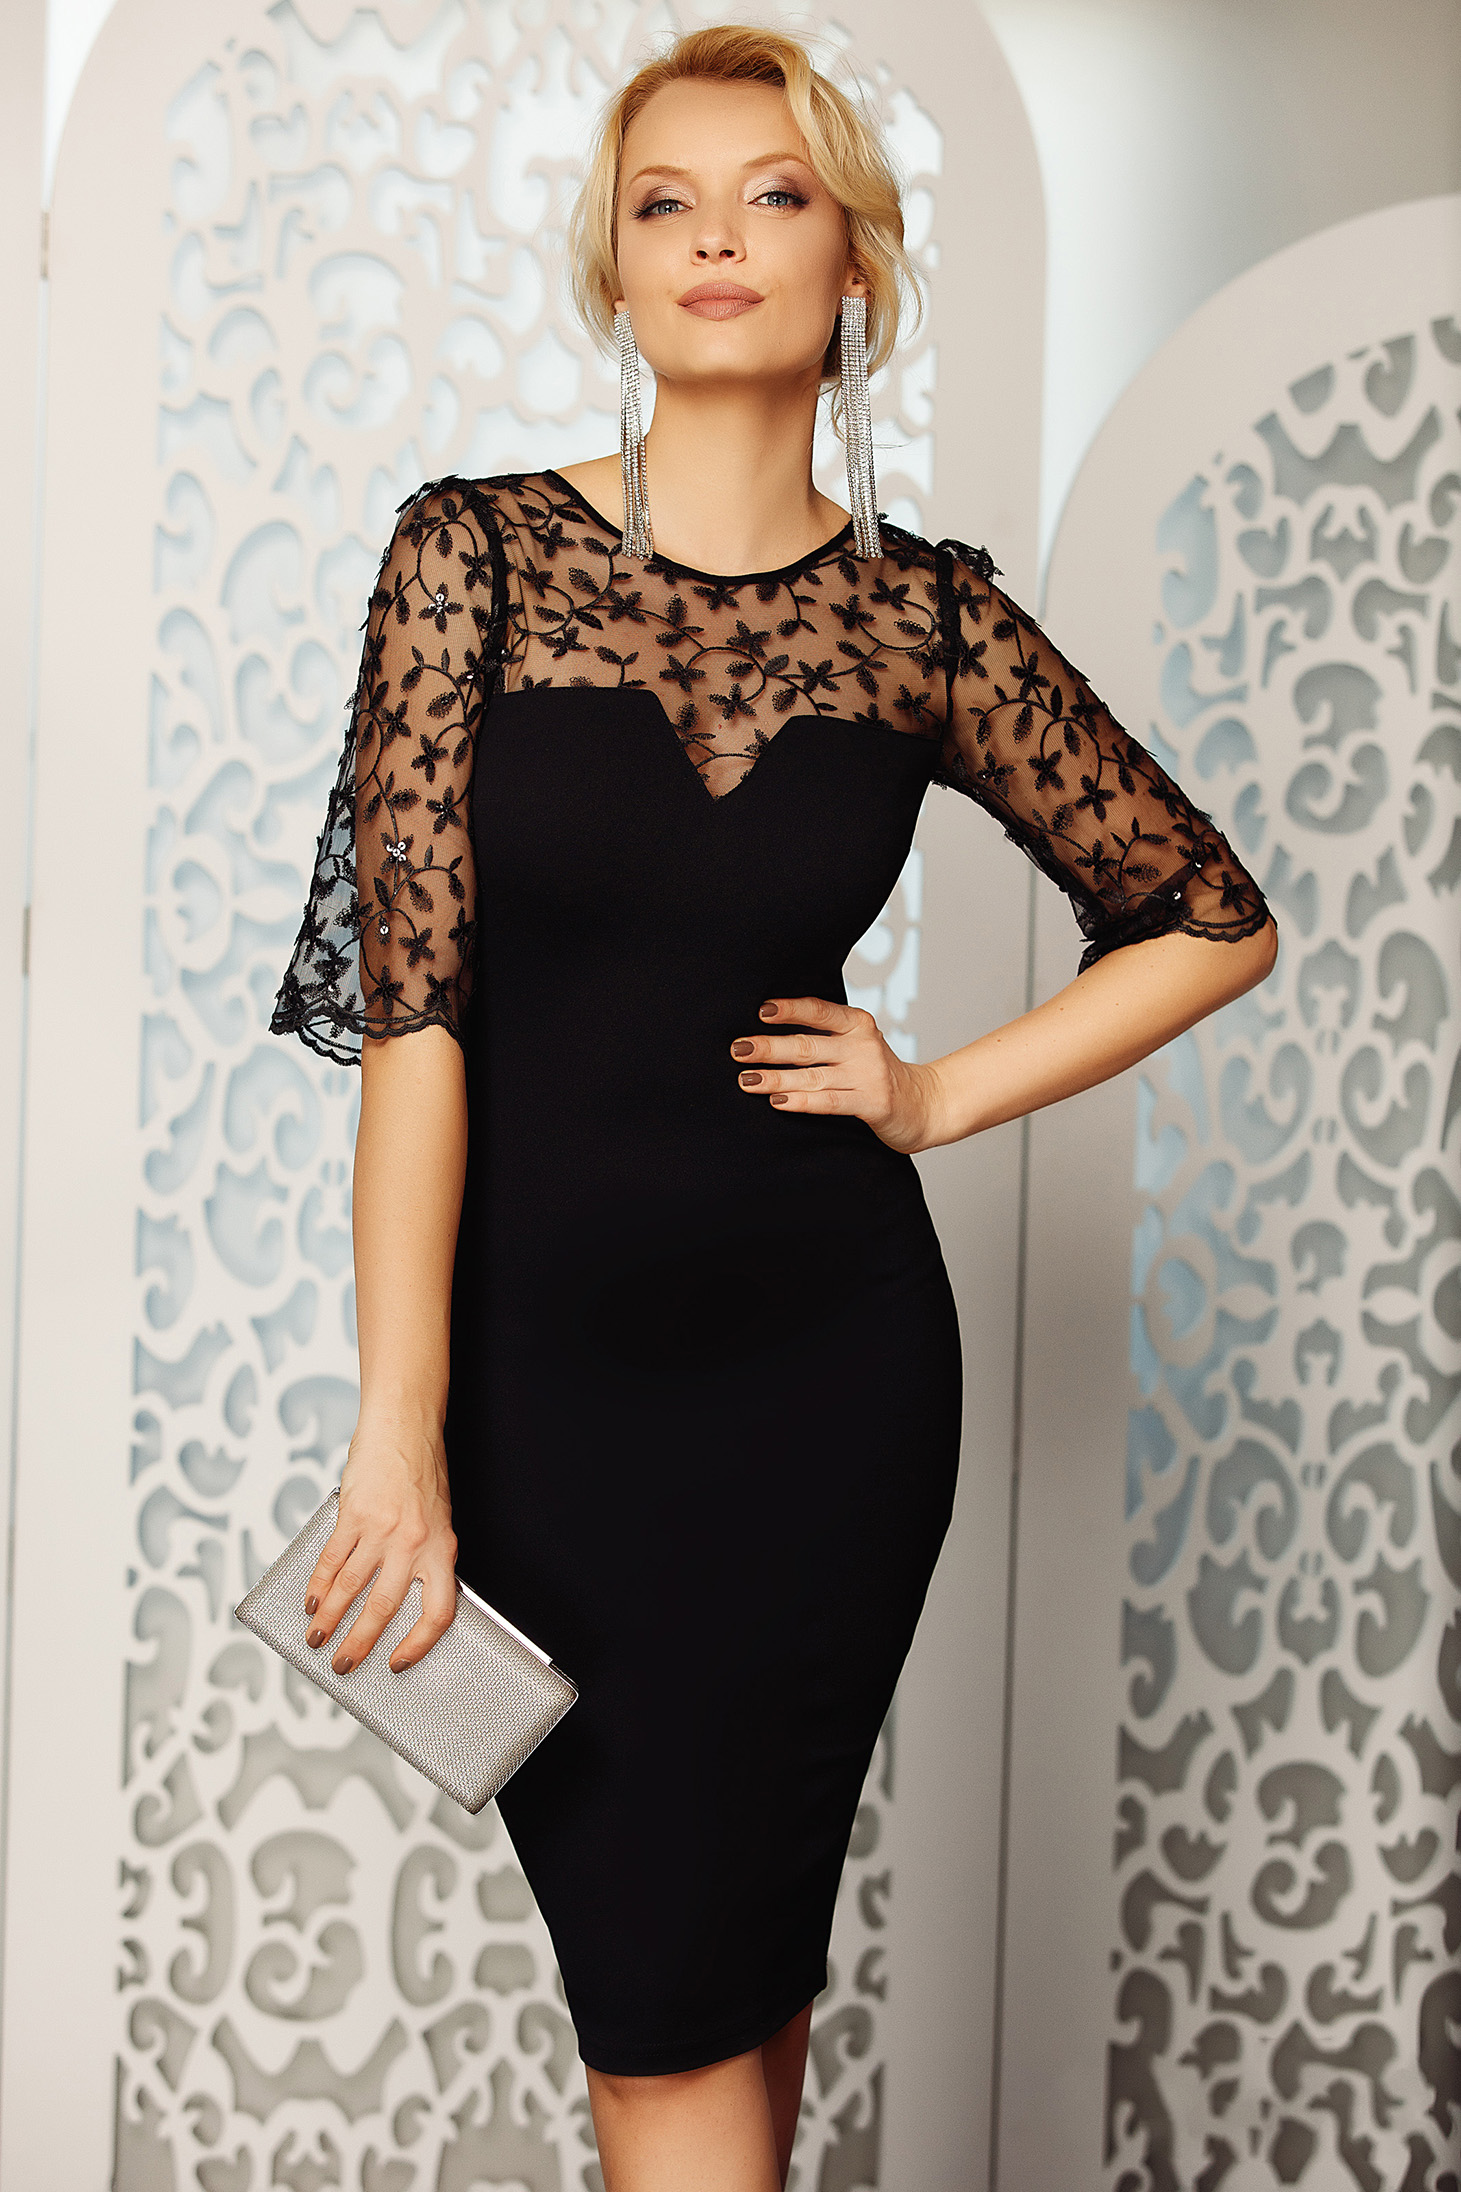 Fofy black occasional pencil dress from elastic and laced fabric with sequin embellished details